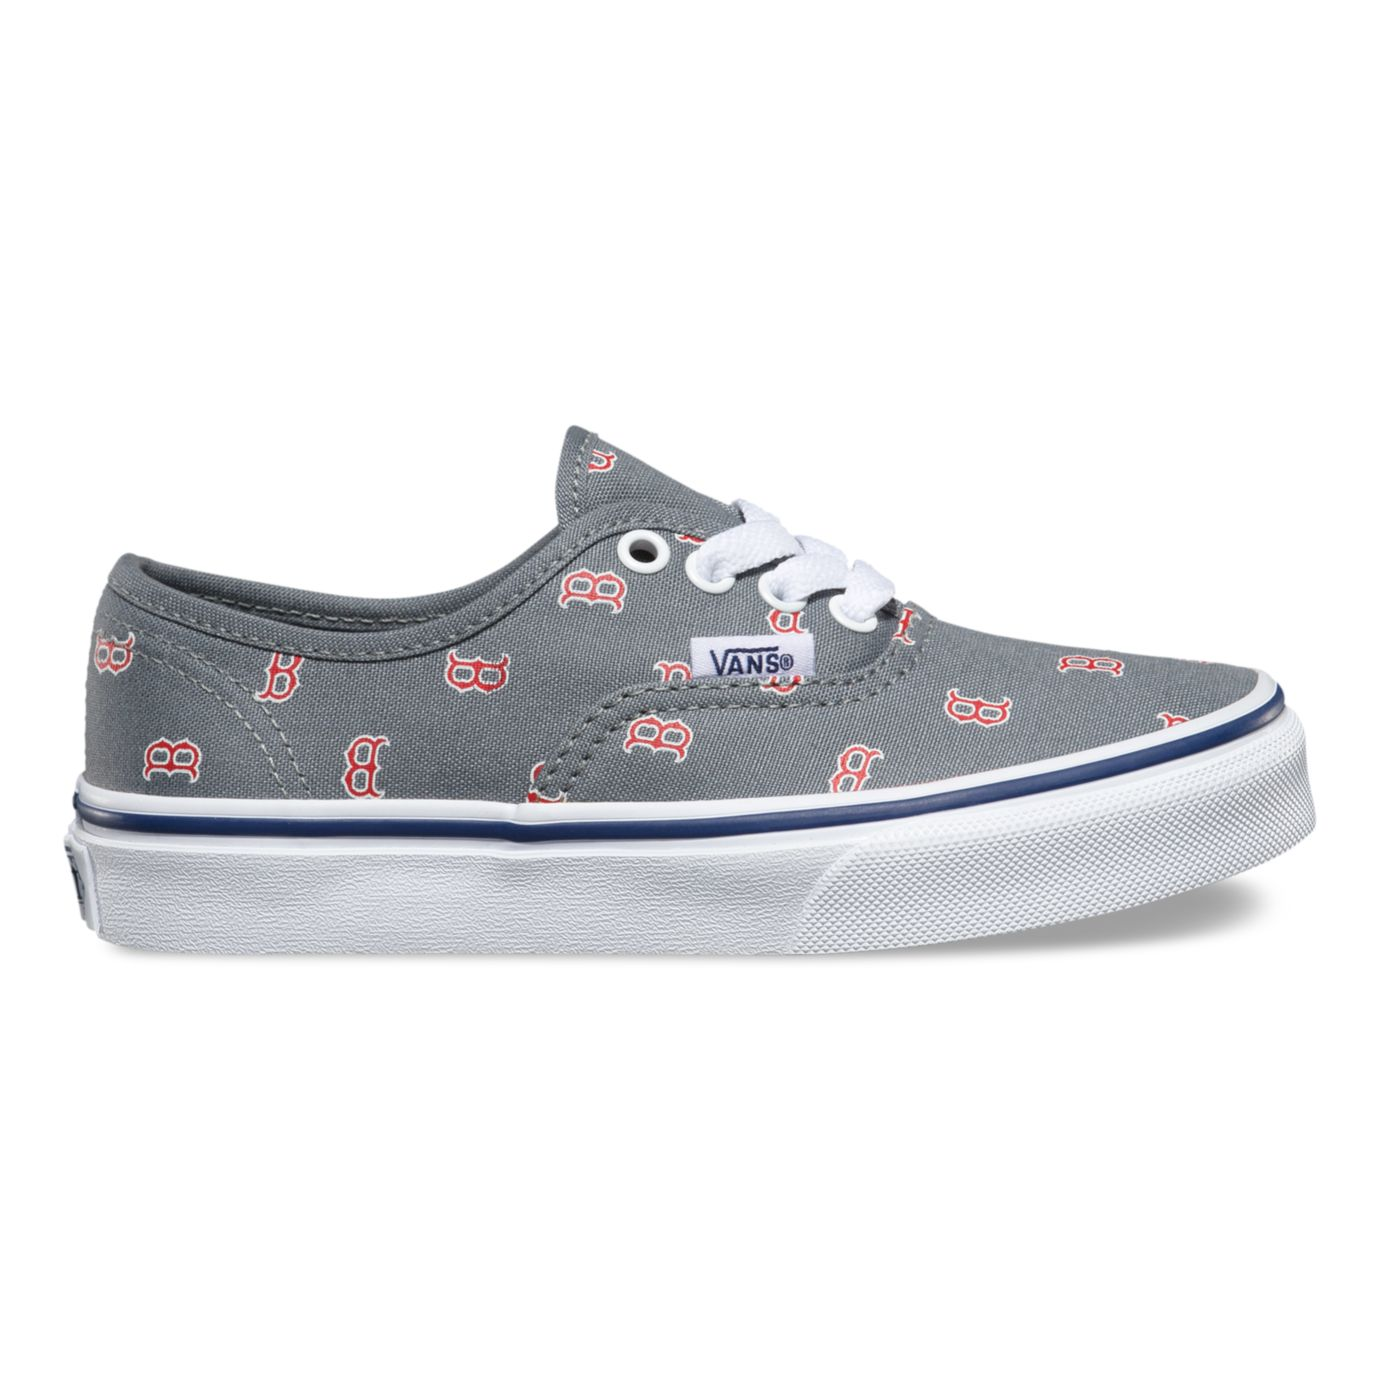 76f230076be Vans x Major League Baseball